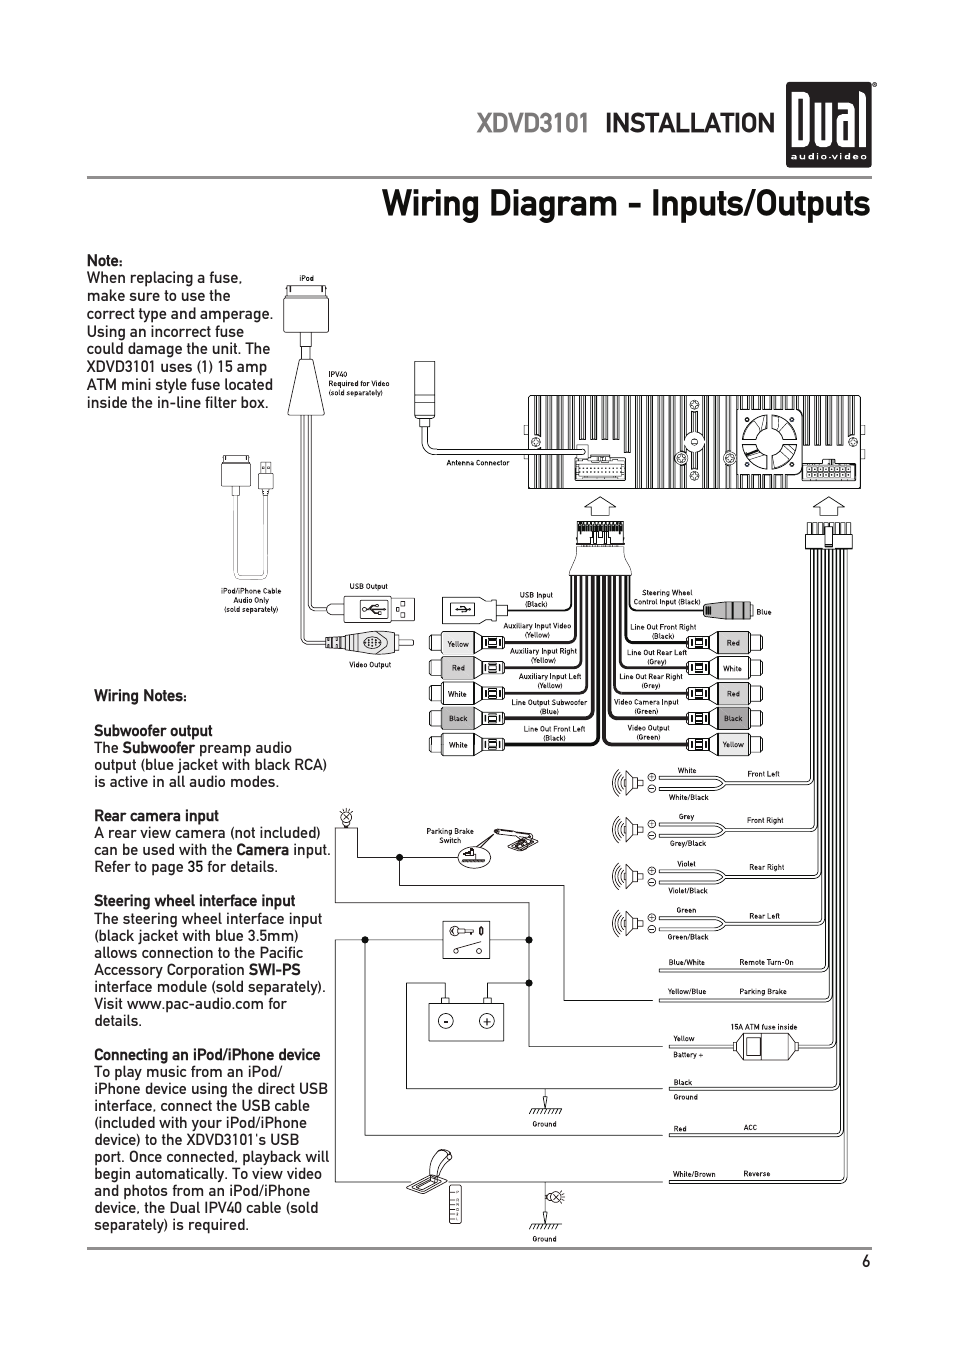 Wiring Diagram  Outputs  Xdvd3101 Installation